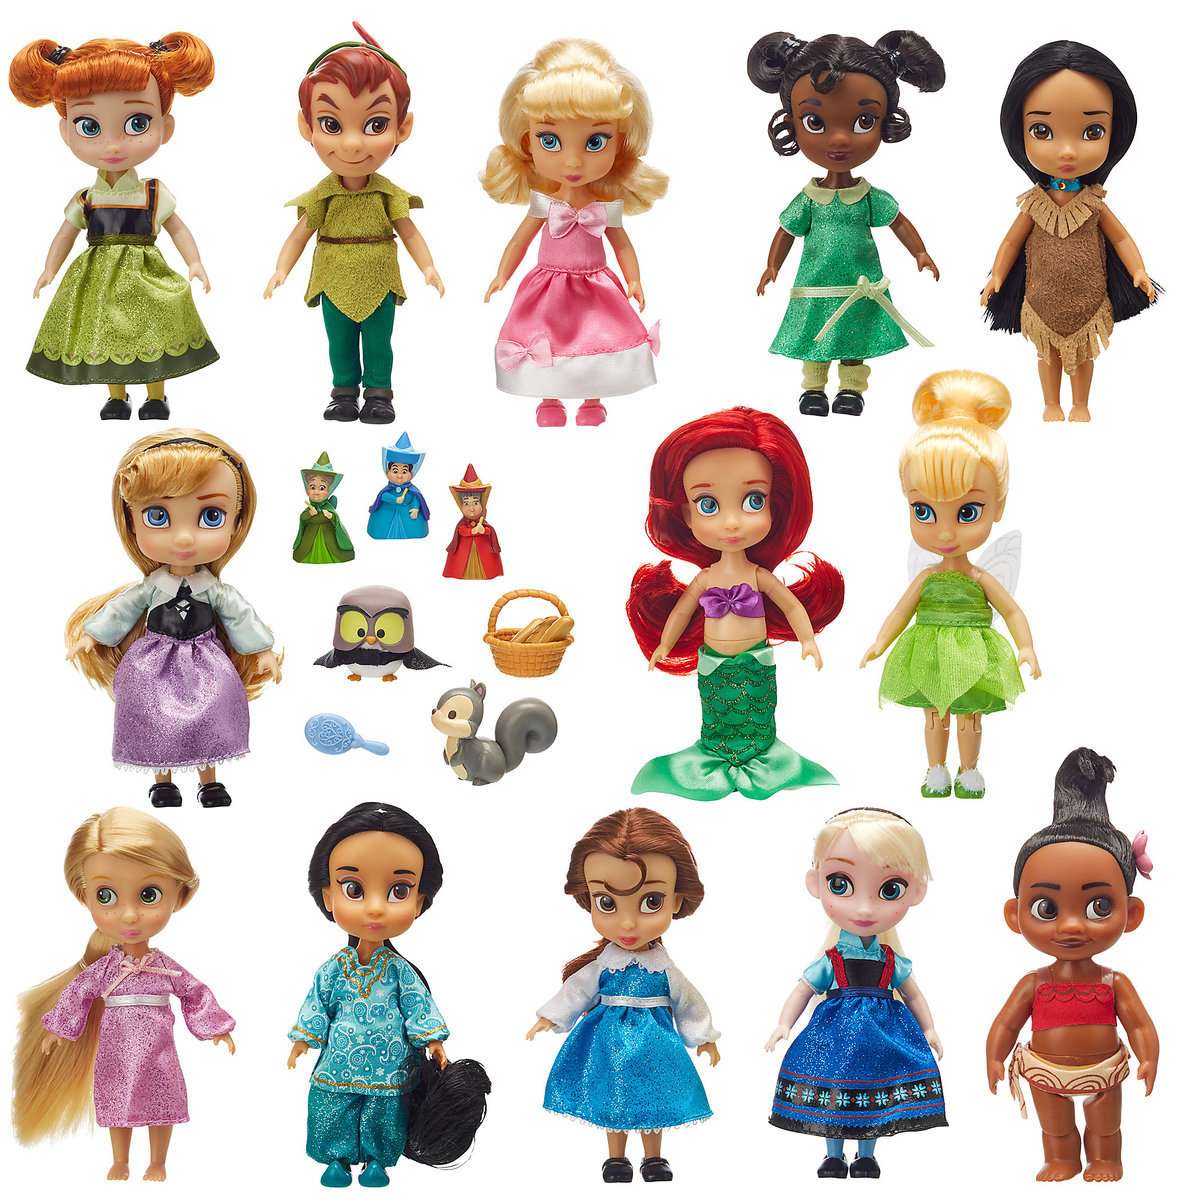 7b2a64857b6 Product Image of Disney Animators  Collection Mini Doll Gift Set - 5